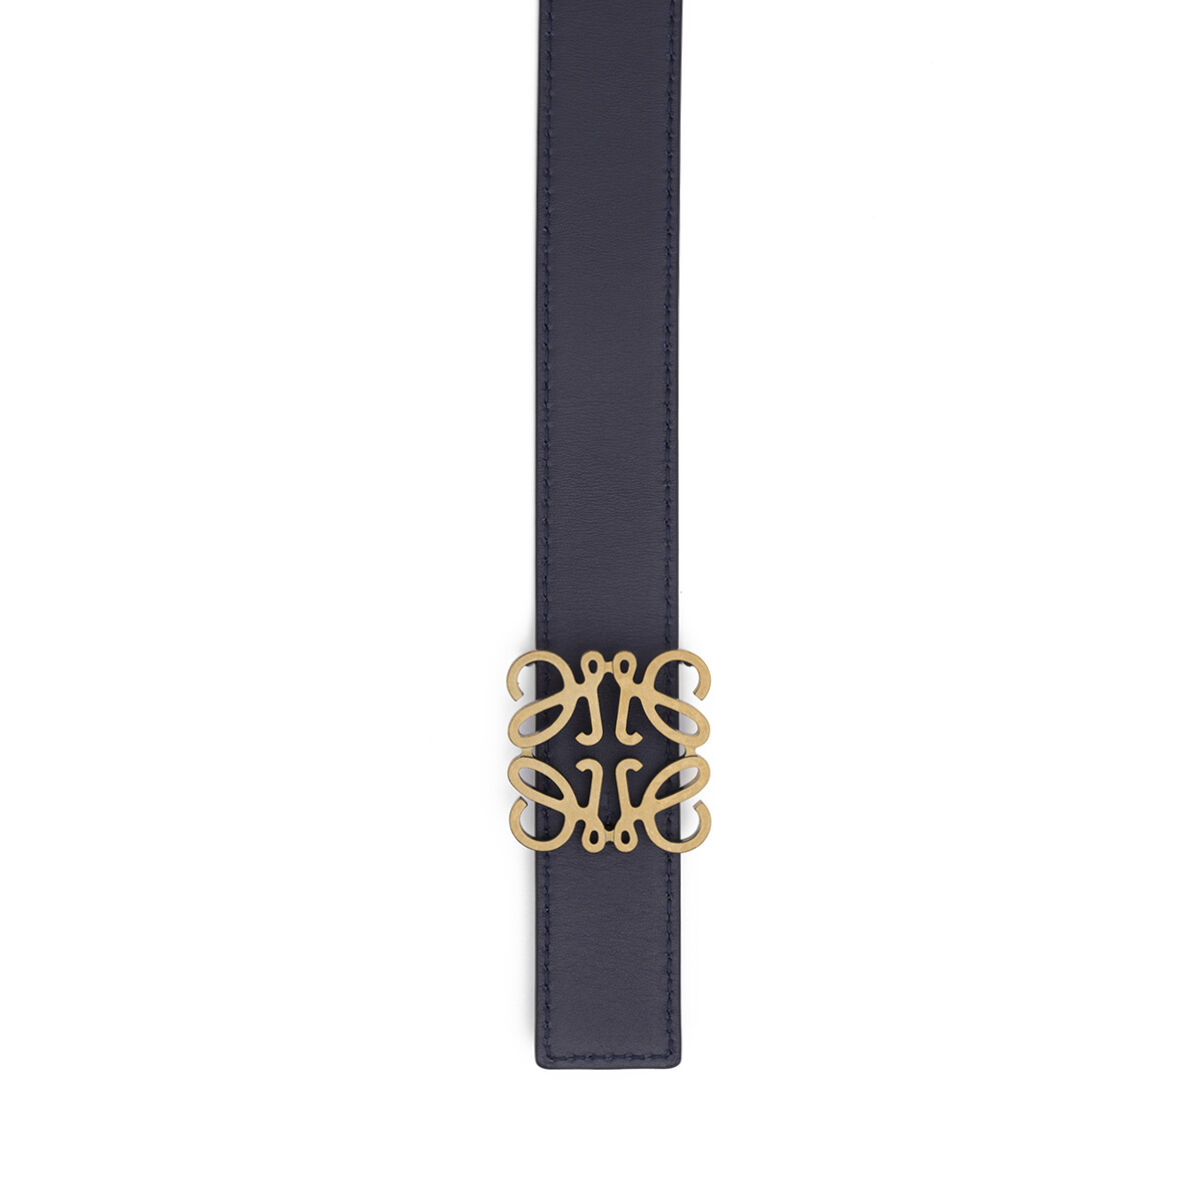 LOEWE Anagram Belt 3.2 Cm Black/Navy/Old Gold all